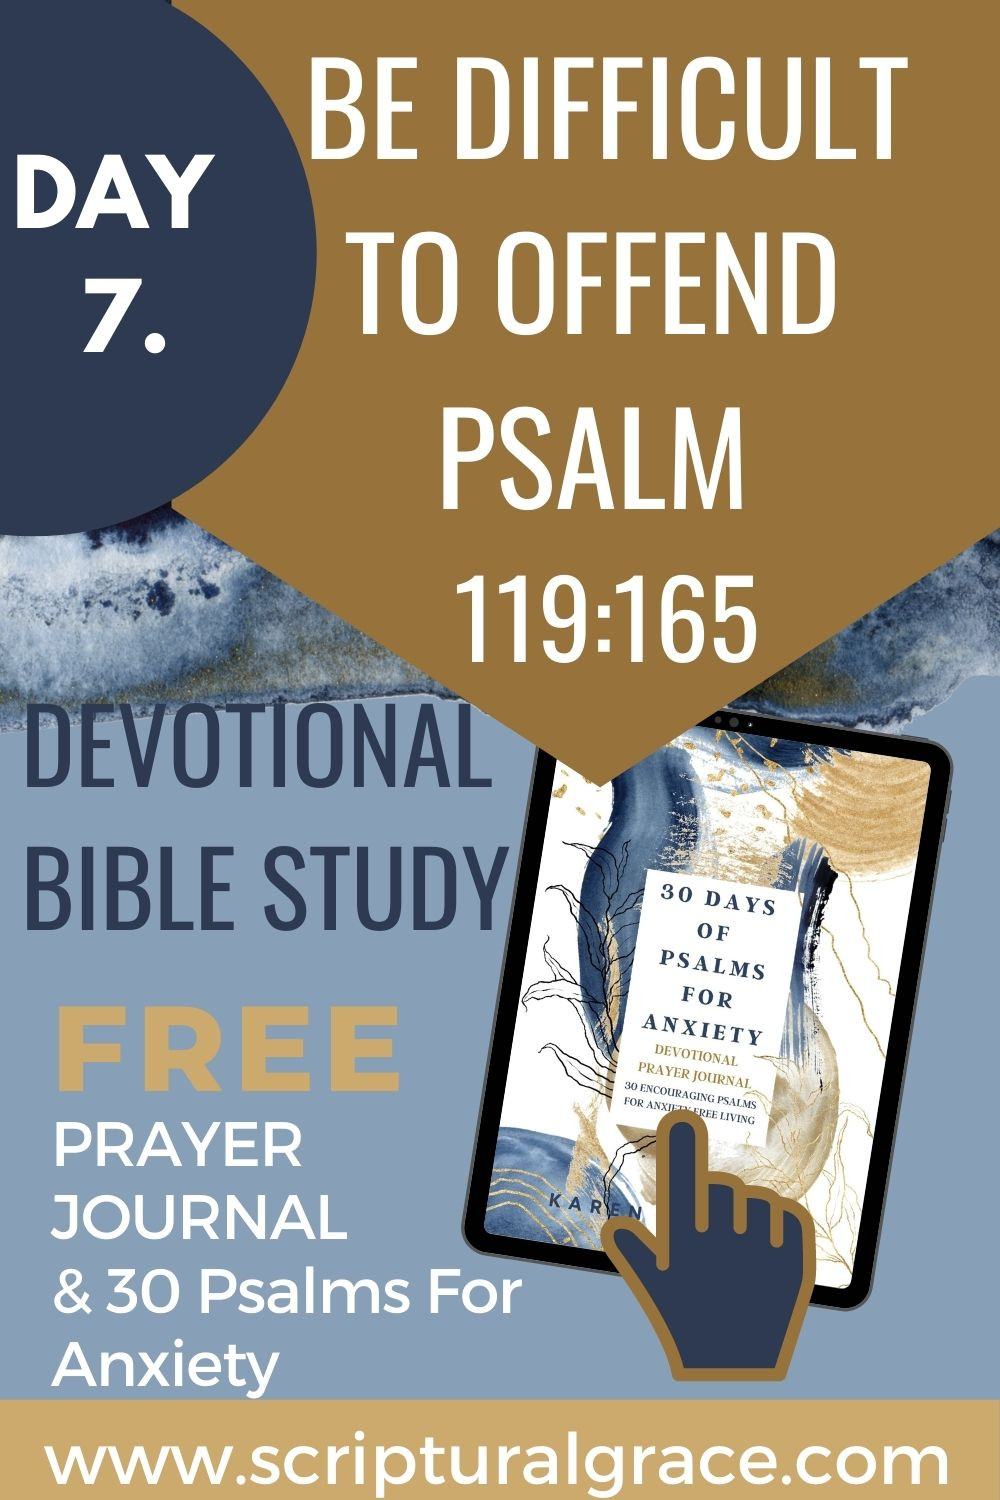 BE DIFFICULT TO OFFEND DEVOTIONAL PSALM 119 165 FREE PRINTABLE